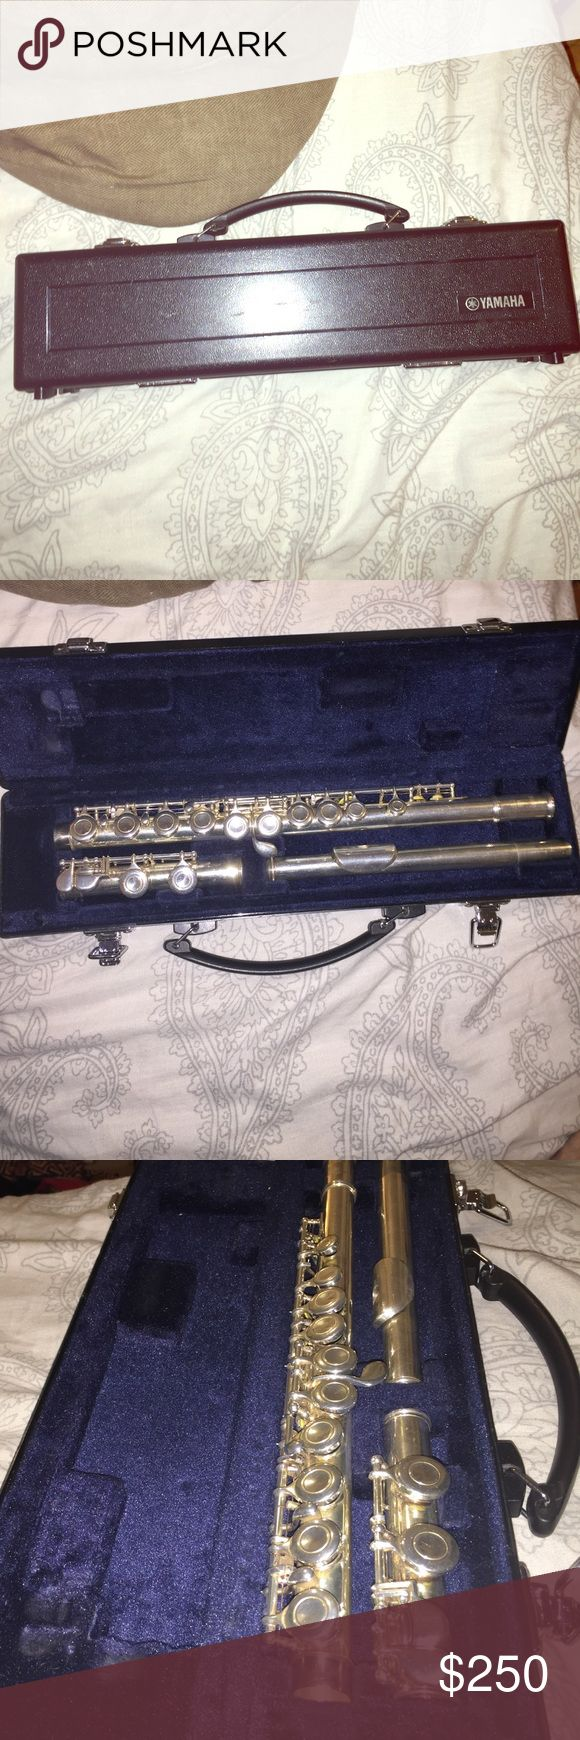 Yamaha flute + case! Played for two years in middle school band. Comes with the hard case. Contact me for more info/pictures about it!! Lowest to sell it for will be $250! (: Other